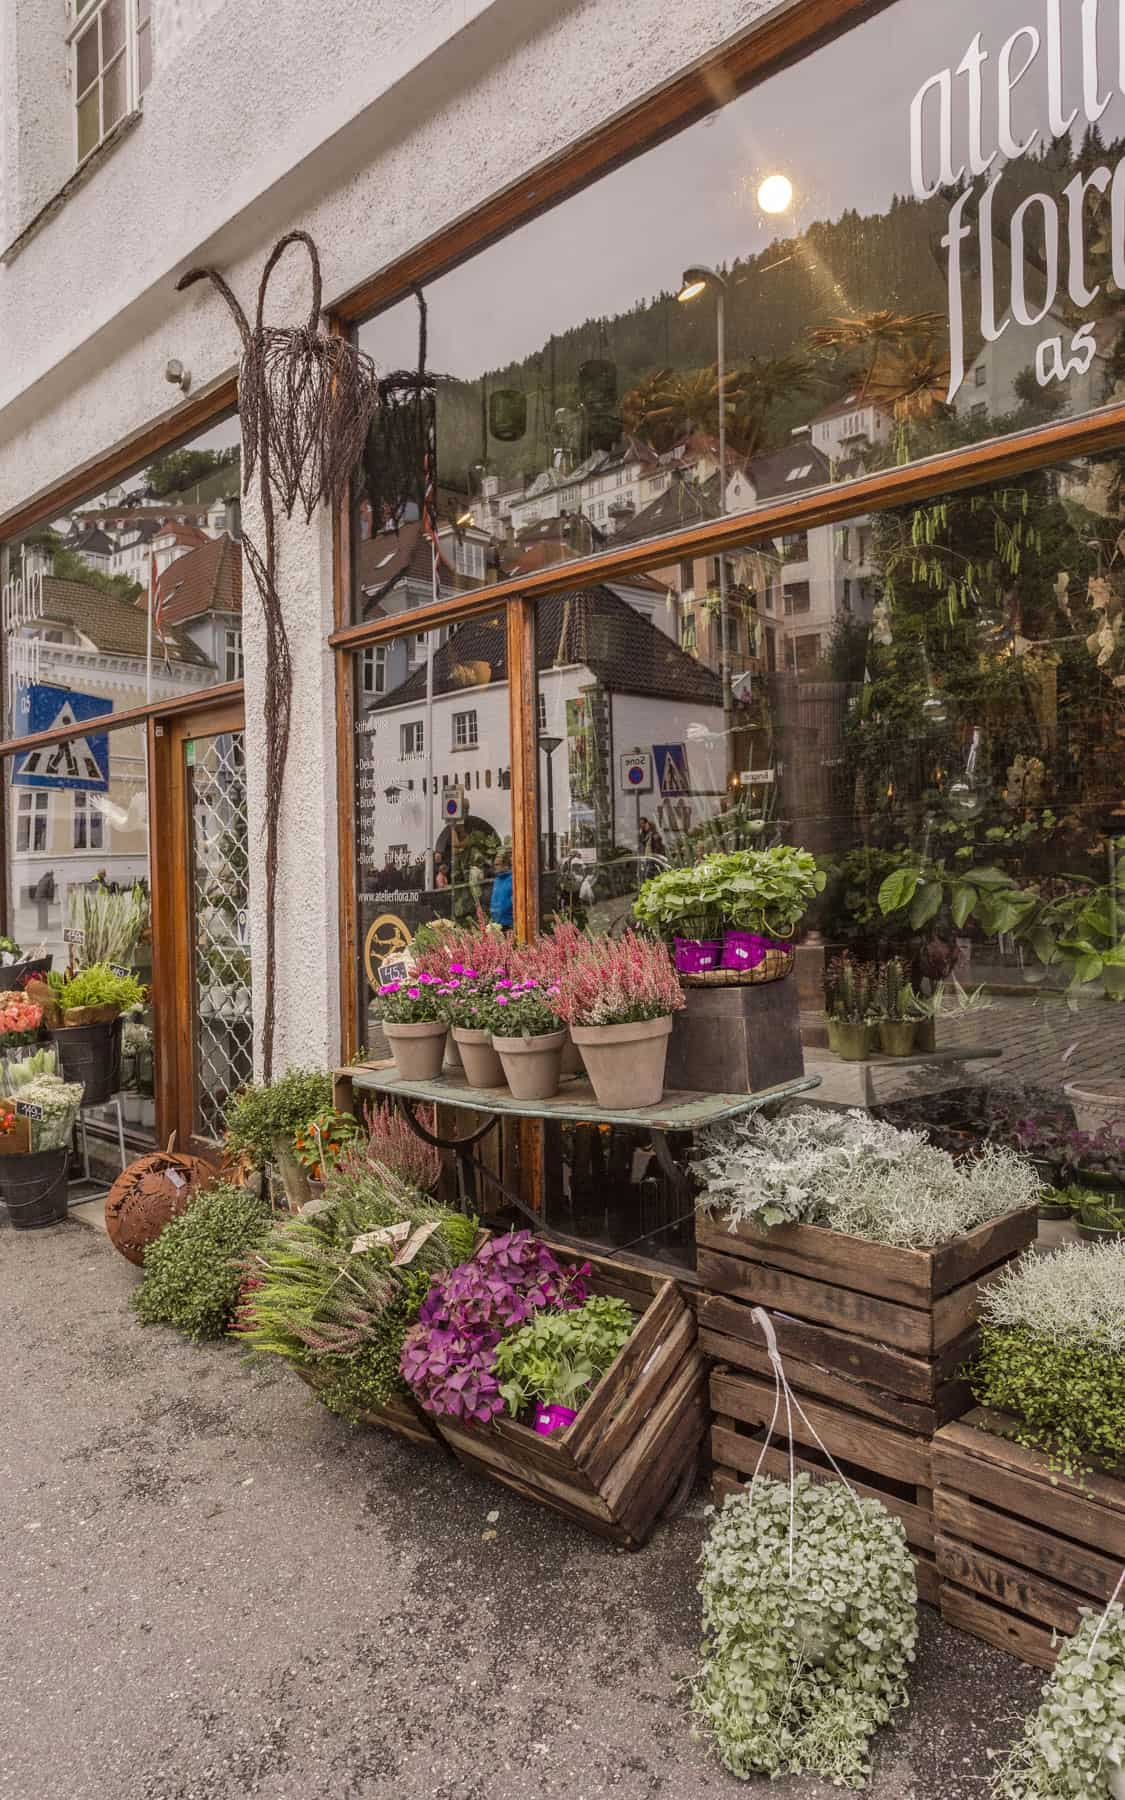 Instagrammable Things to Do in Bergen Norway